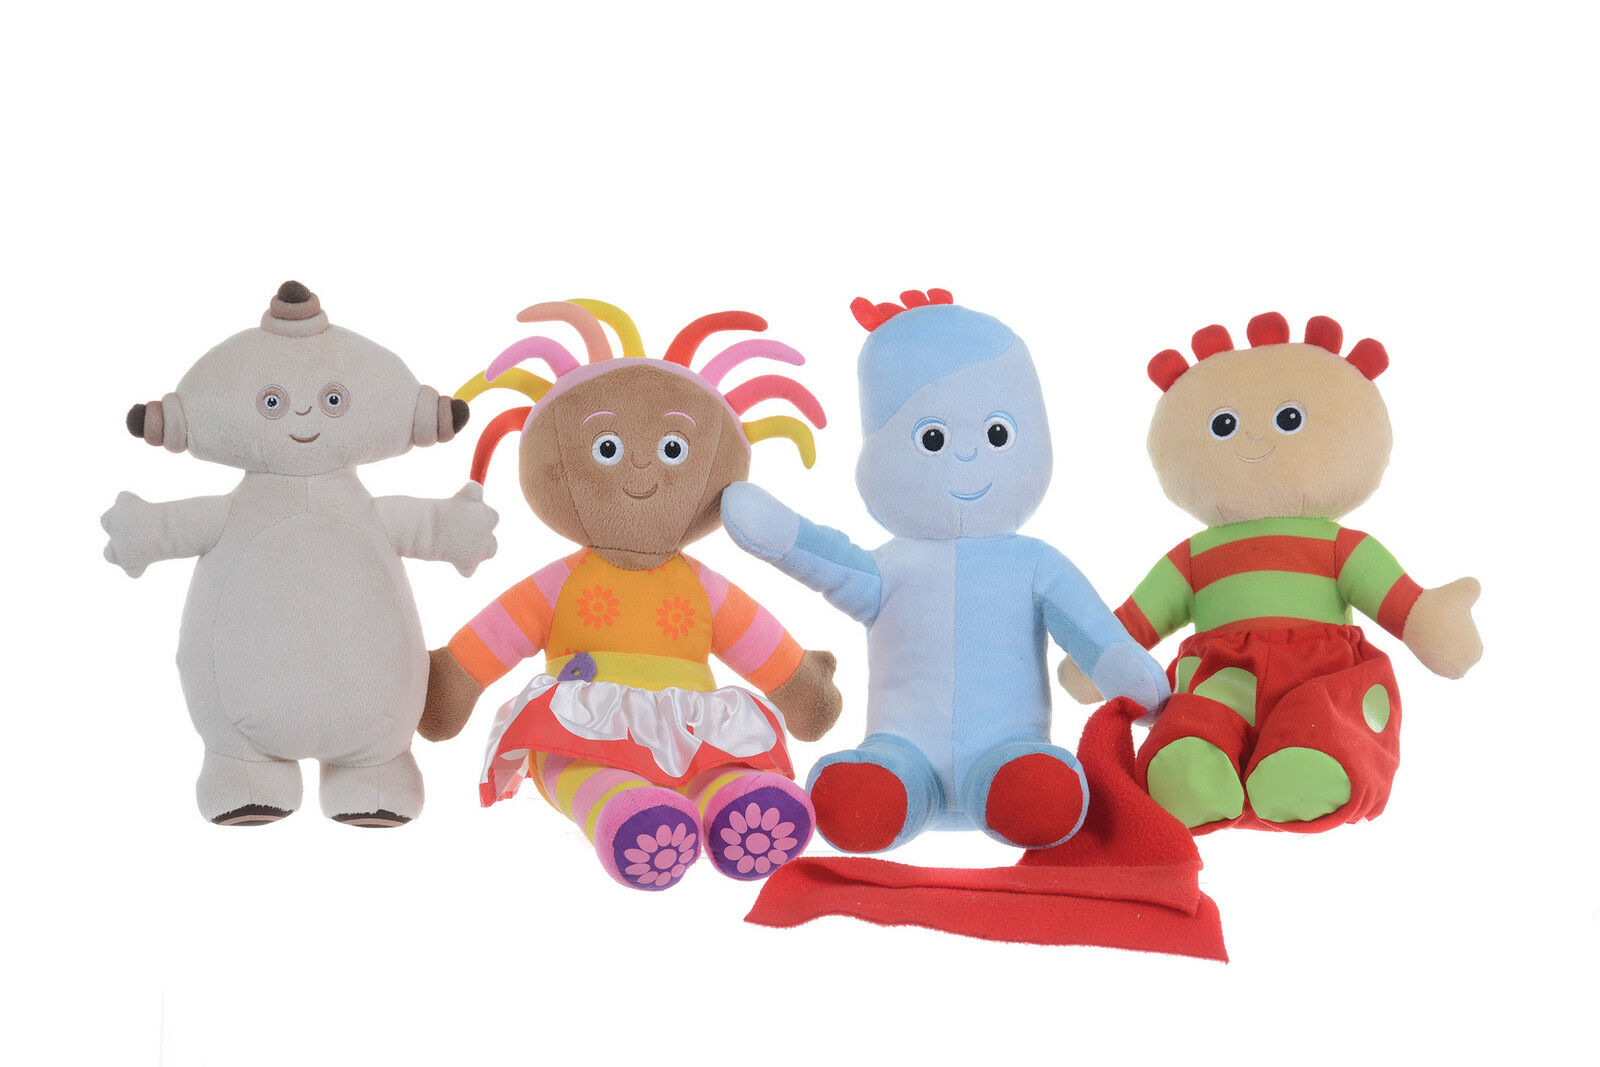 New Soft Toys : New official quot plush soft toys from in the night